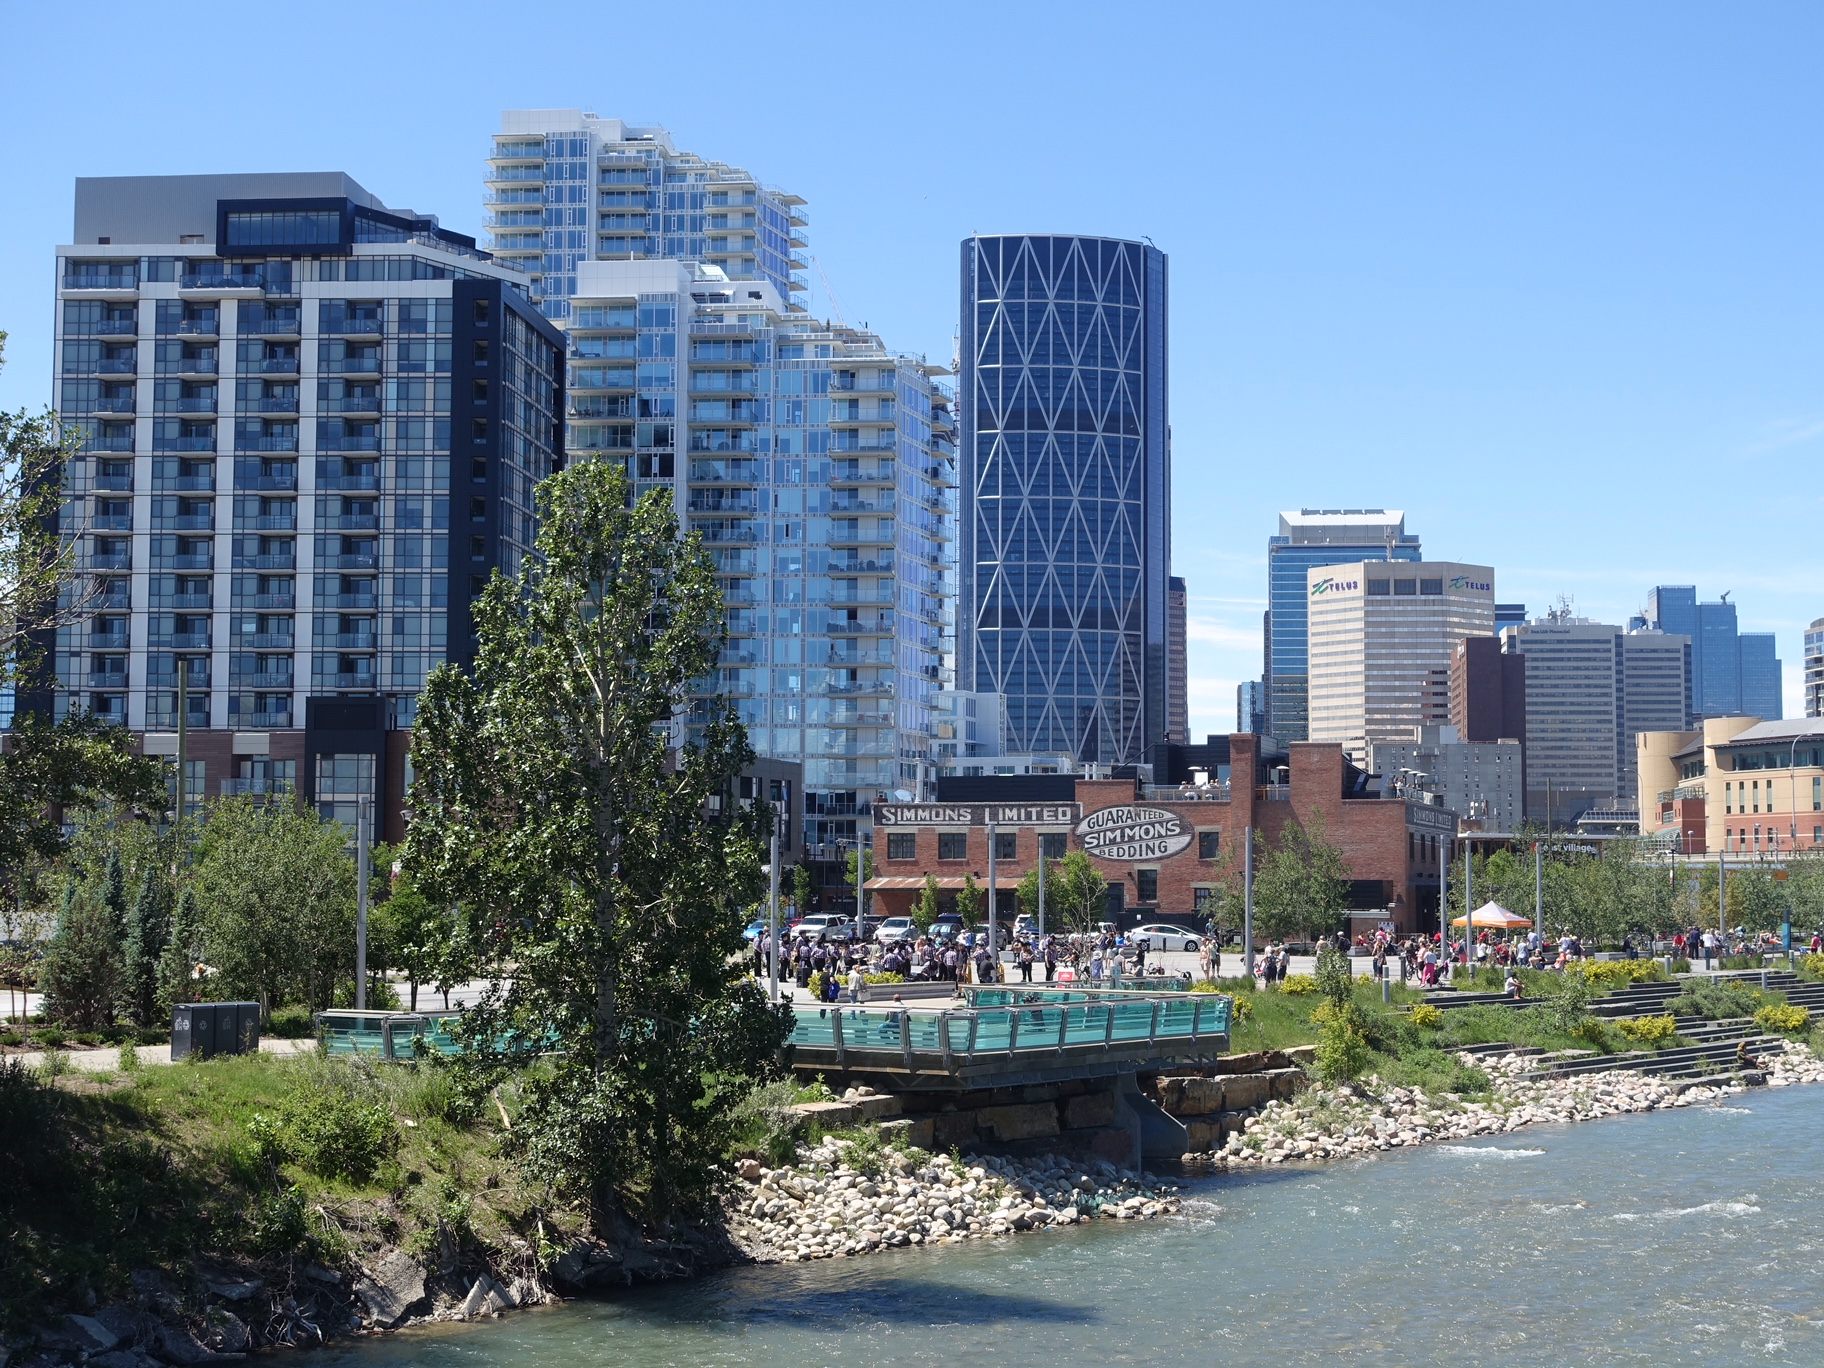 Nashville has nothing to match Calgary's riverside living be it in East Village, Eau Claire or Mission.